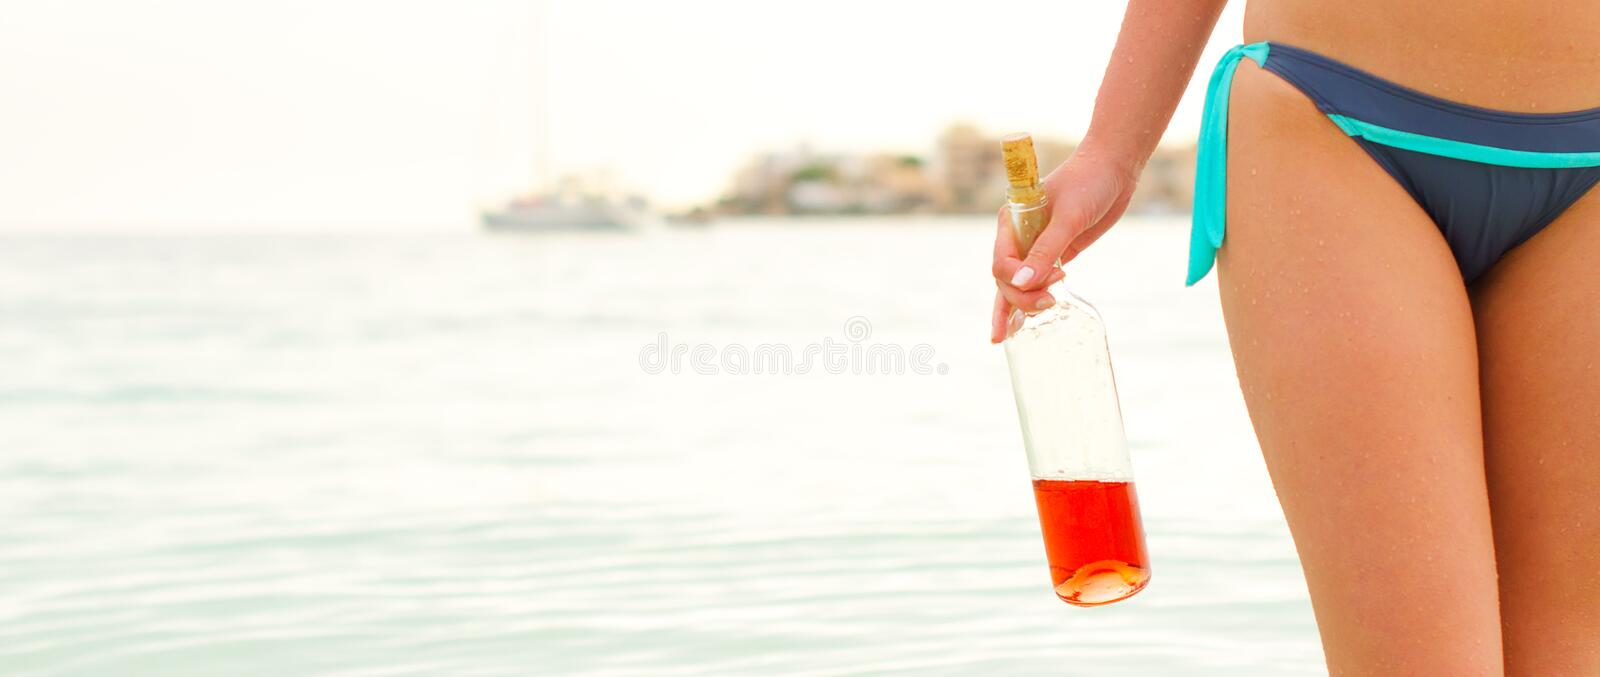 Swimming drunk is dangerous. Social theme concept. Swimming drunk is dangerous. Space for text royalty free stock images